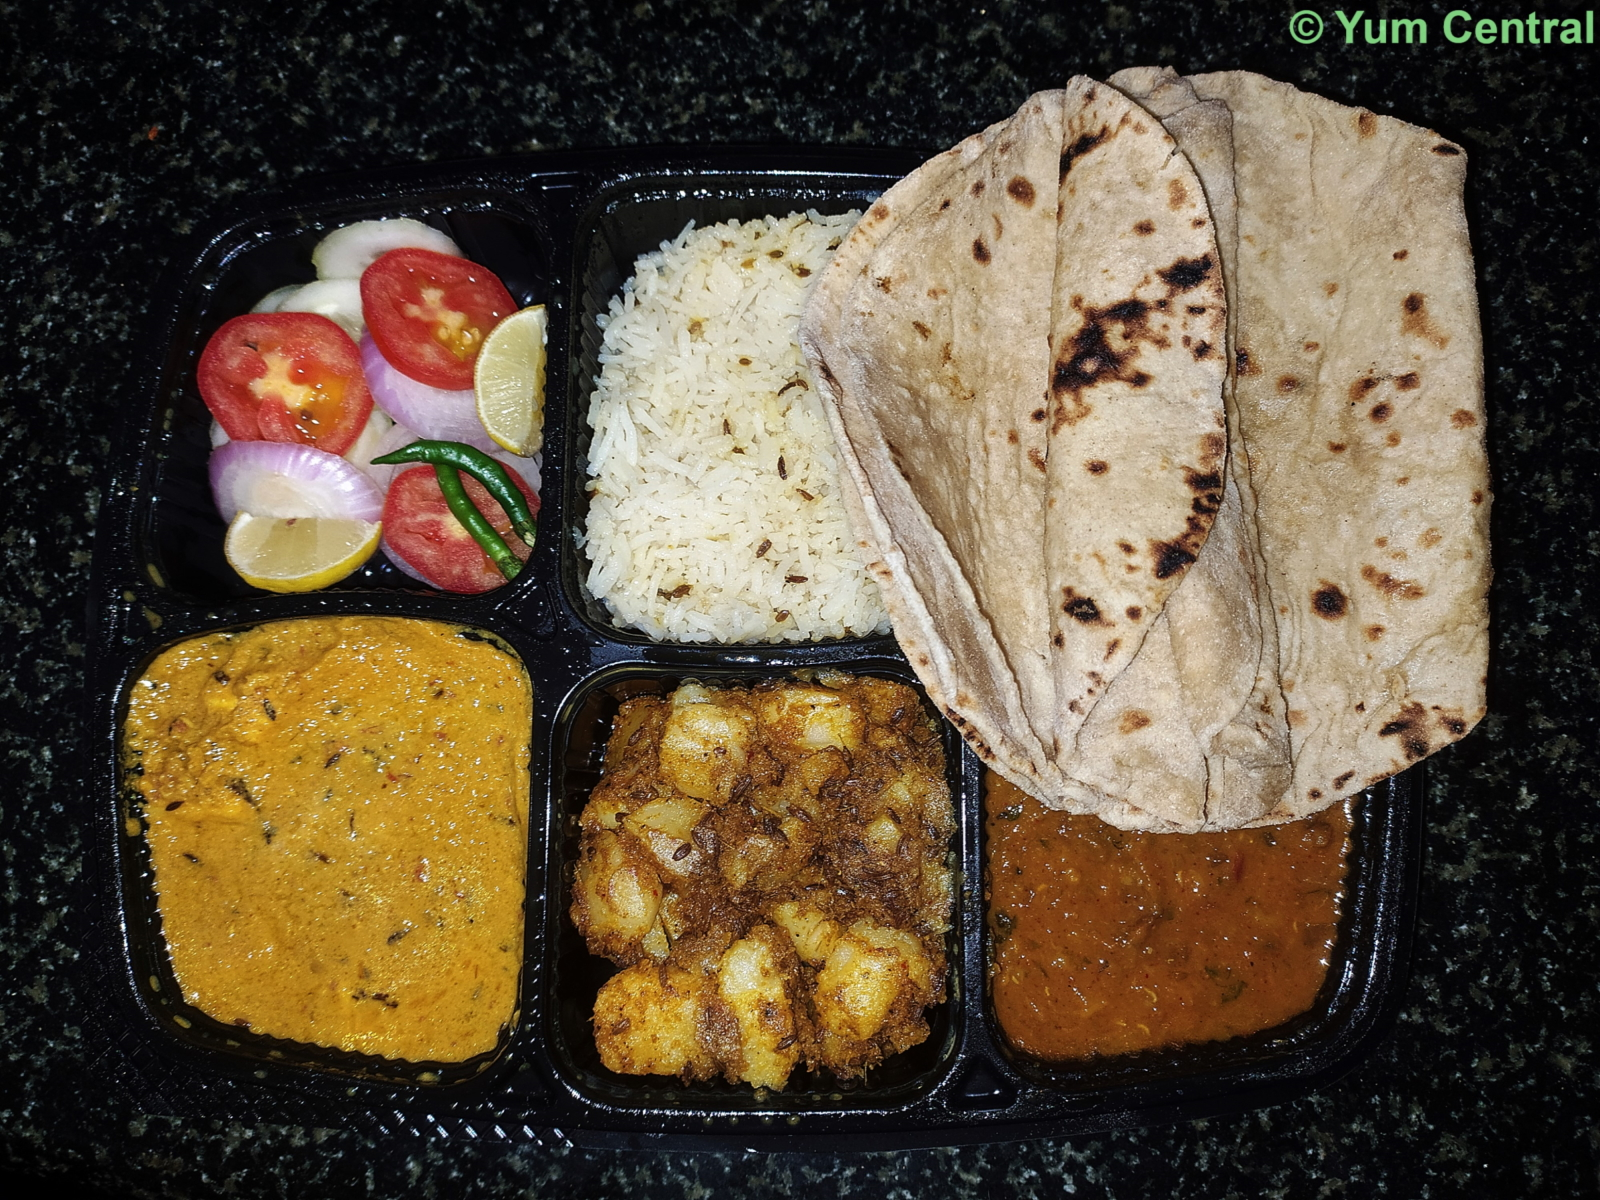 The Food Adda Review: This restaurant has decent food, with some value for money [4/5]